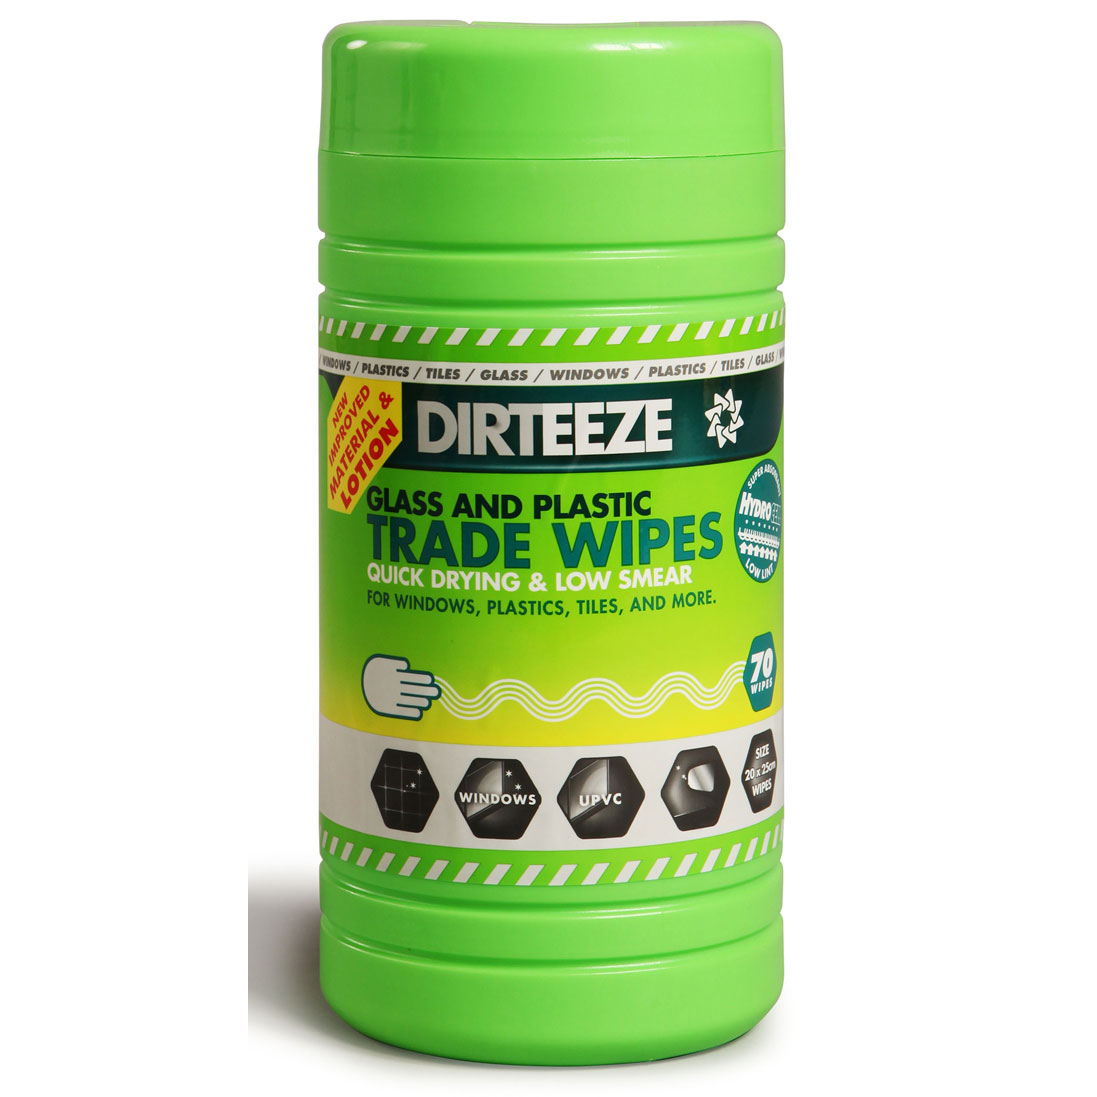 Dirteeze Glass & Plastic Trade Wipes Dispenser Tub 200x250mm Ref DZGP80 80 Wipes *Up to 3 Day Leadtime*